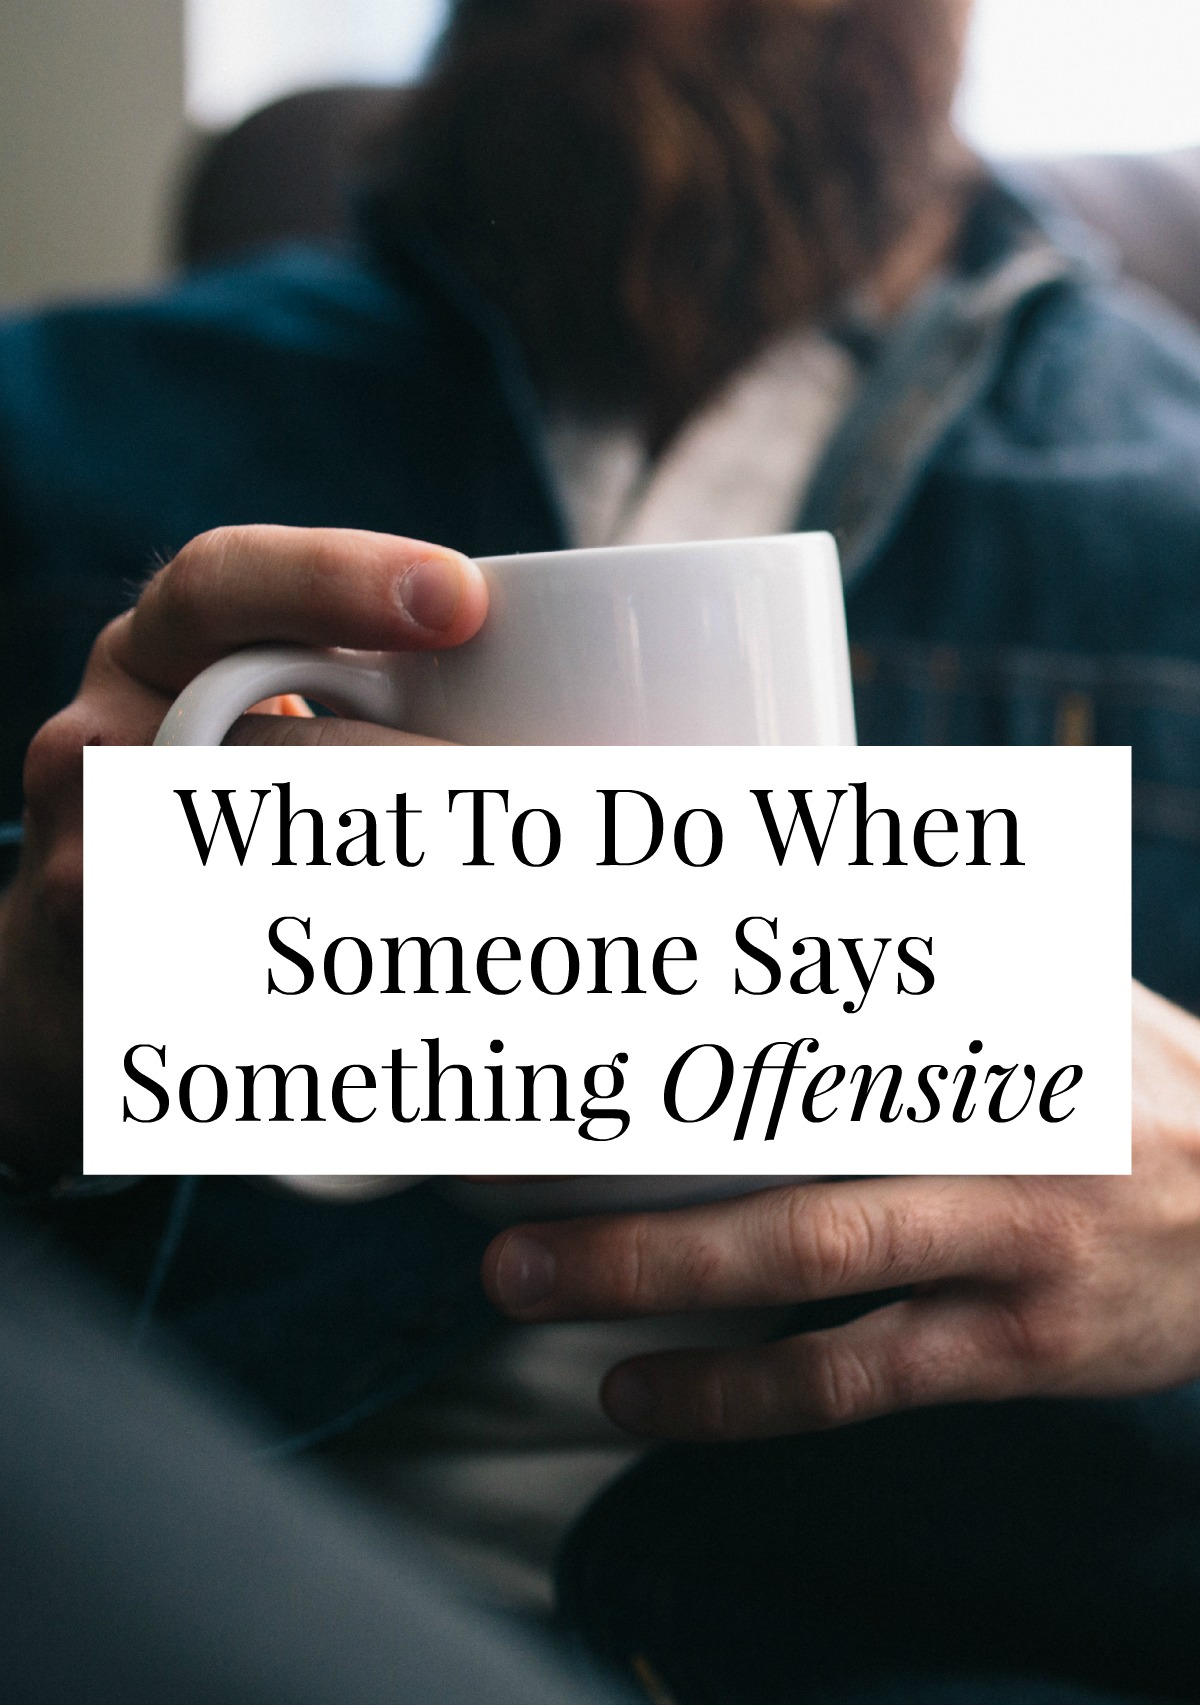 What To Do When Someone Says Something Offensive